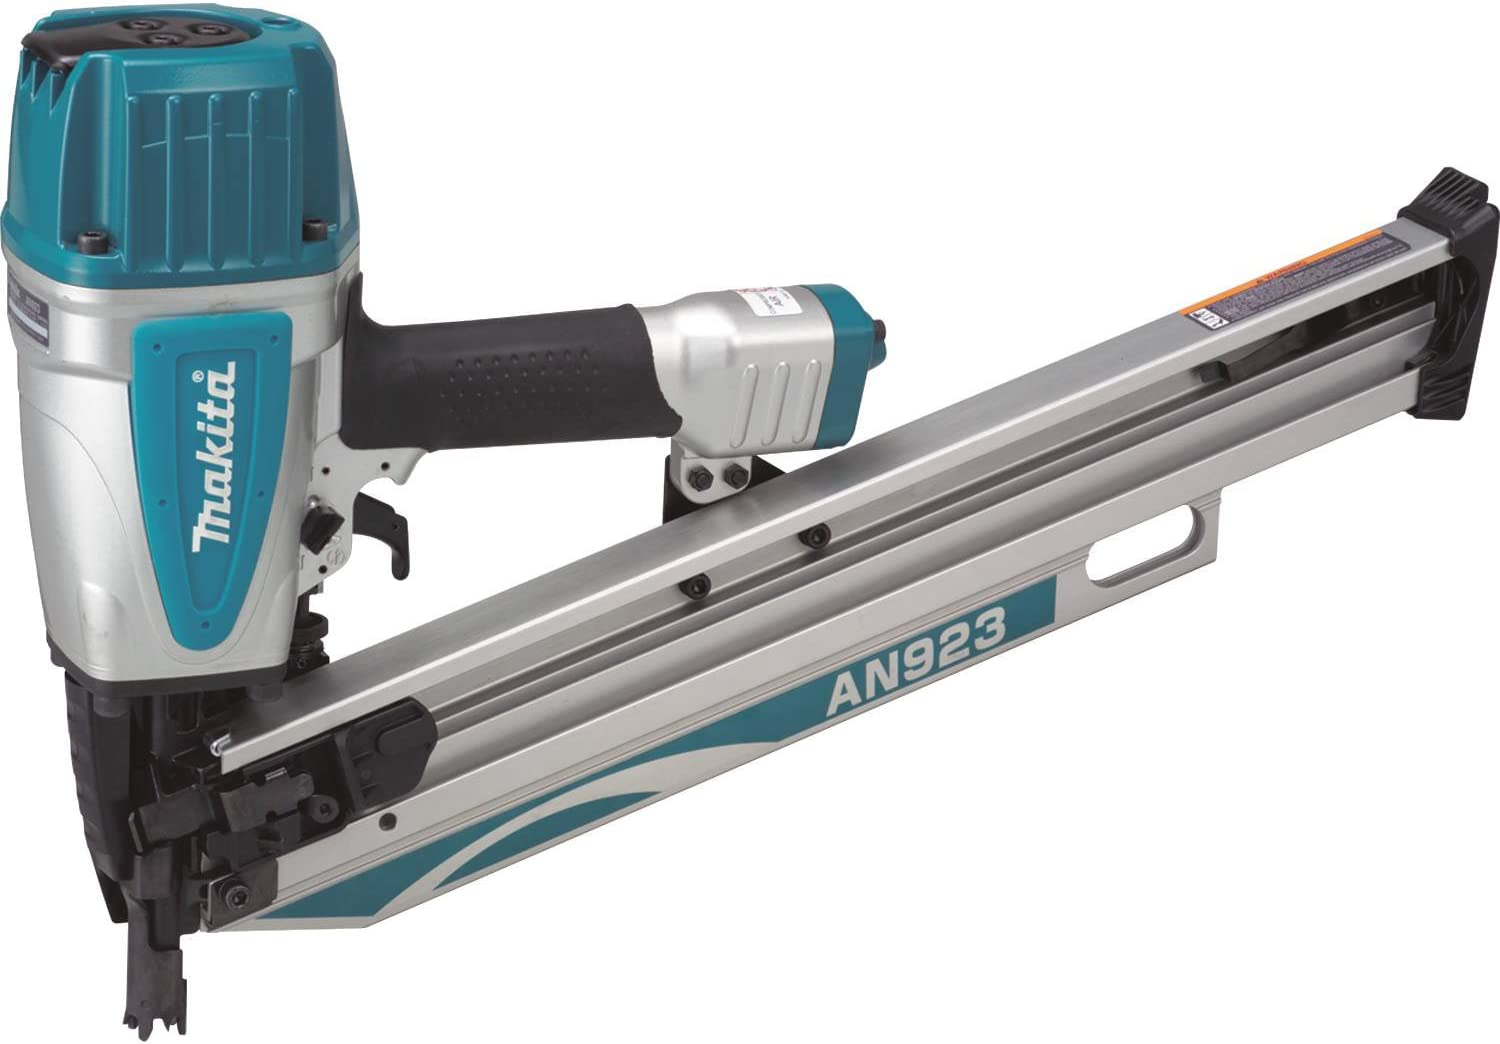 Makita AN923 3-1 2-inch Framing Nailer 22 Degree Round Head